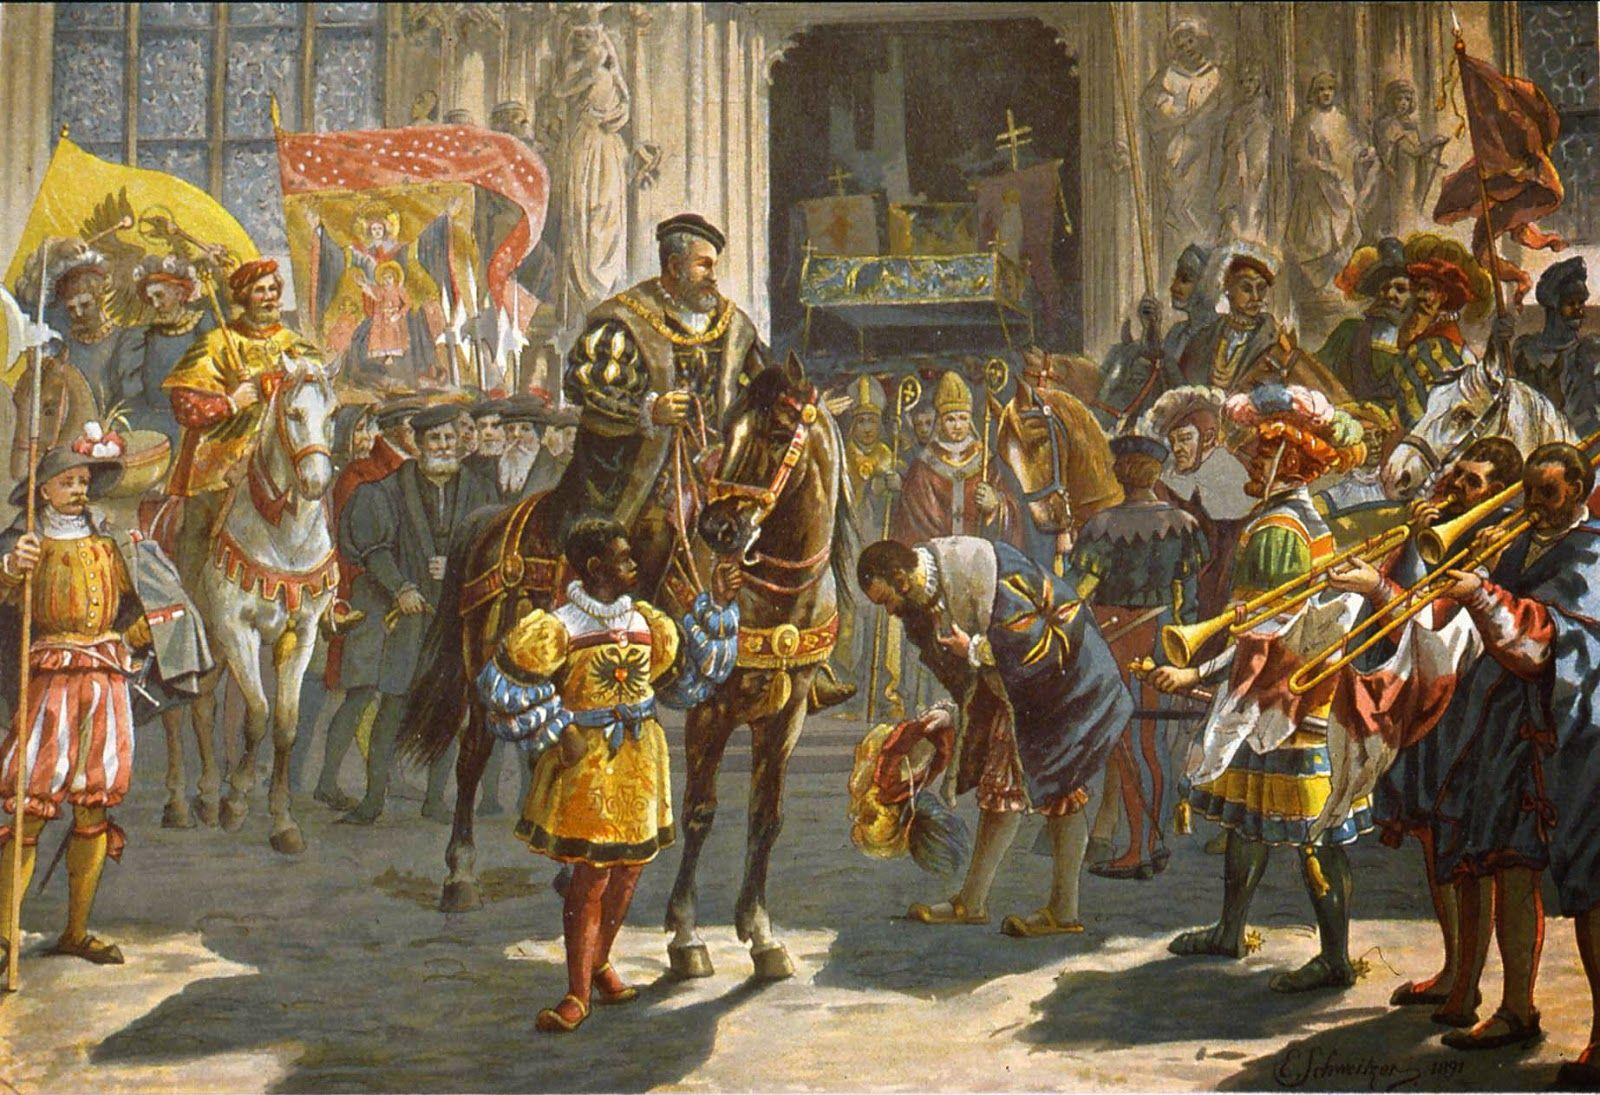 Holy Roman Emperor Charles V inspecting the German Landsknechts